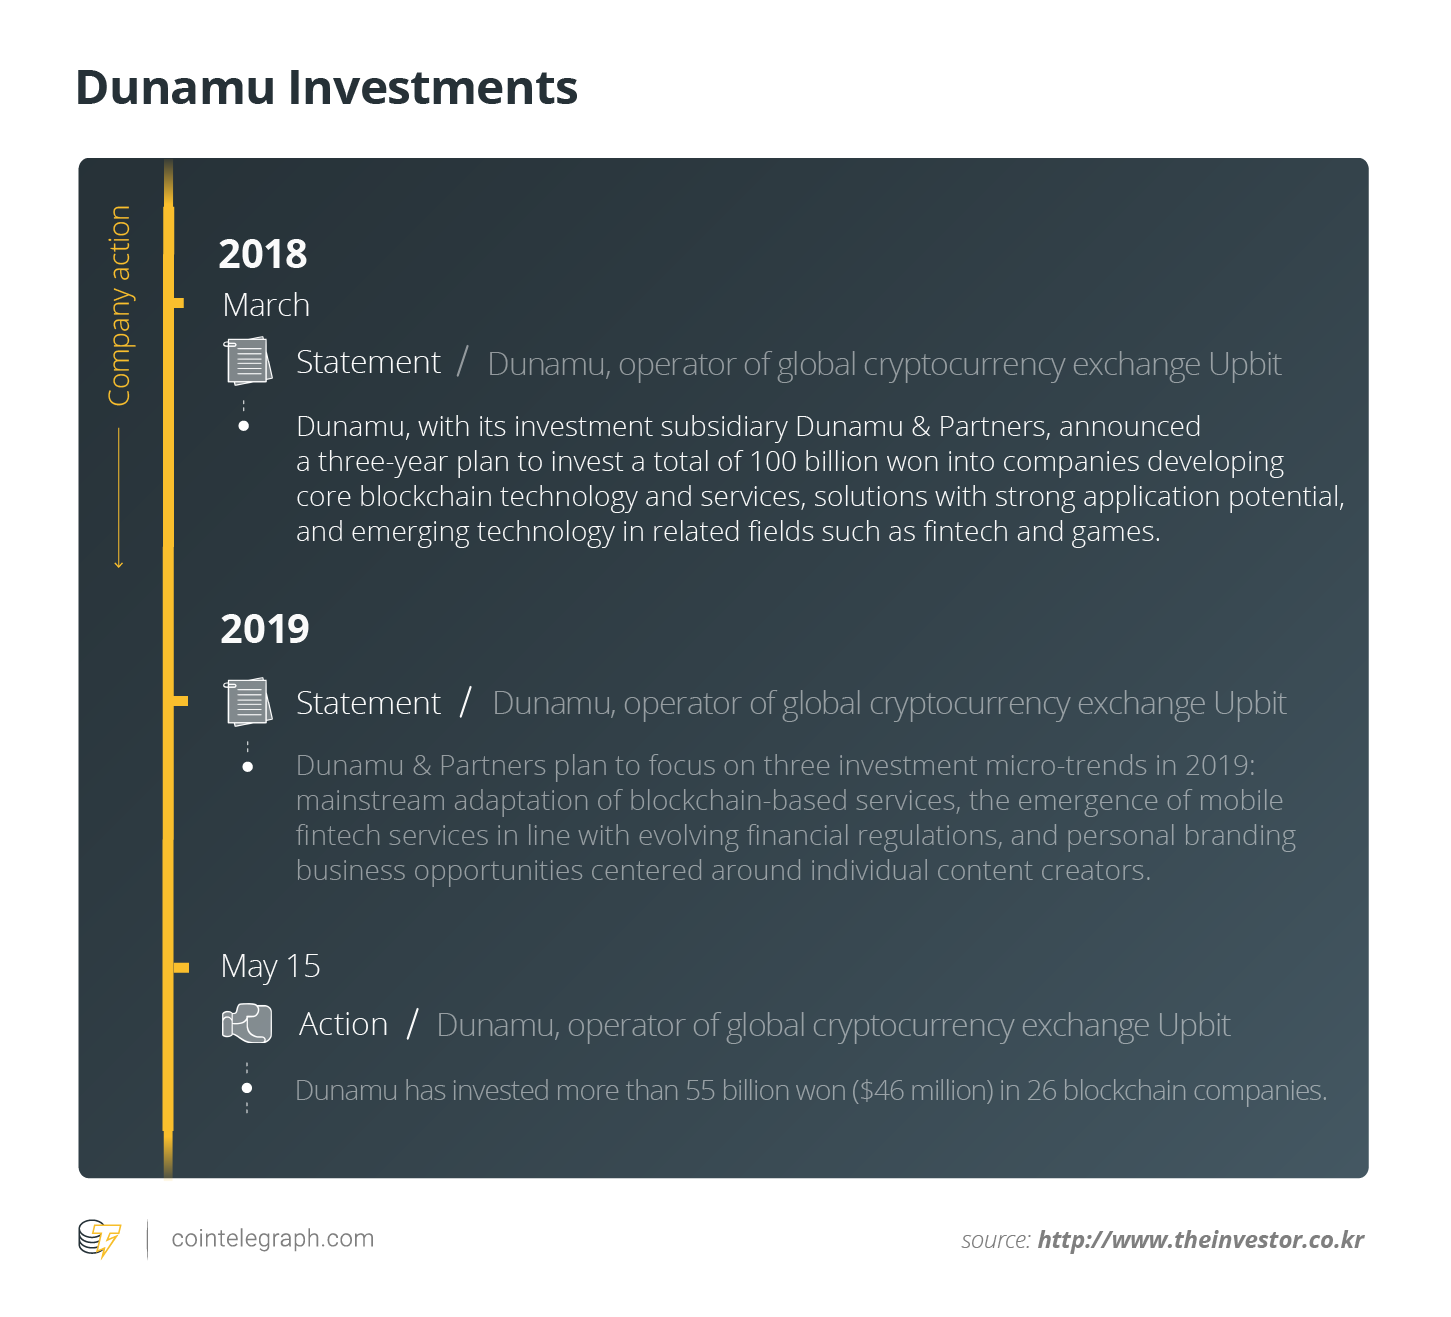 Dunamu Investments